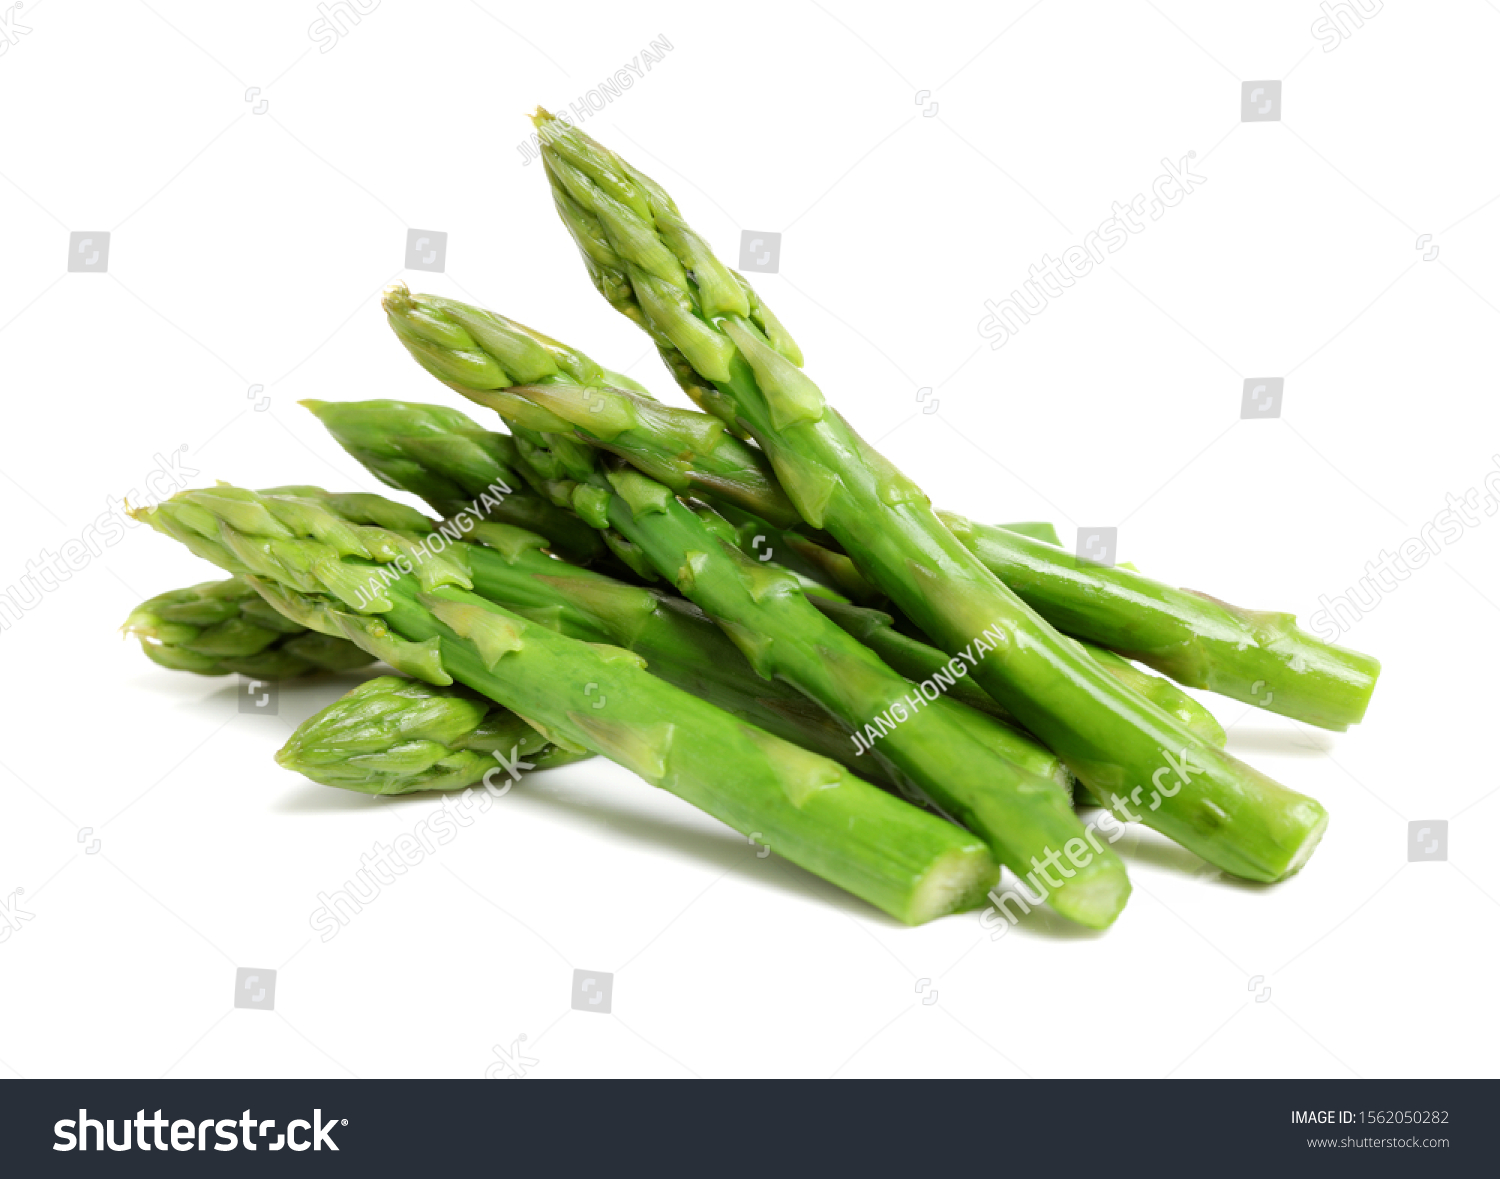 Effective Boiled asparagus on white background #1562050282